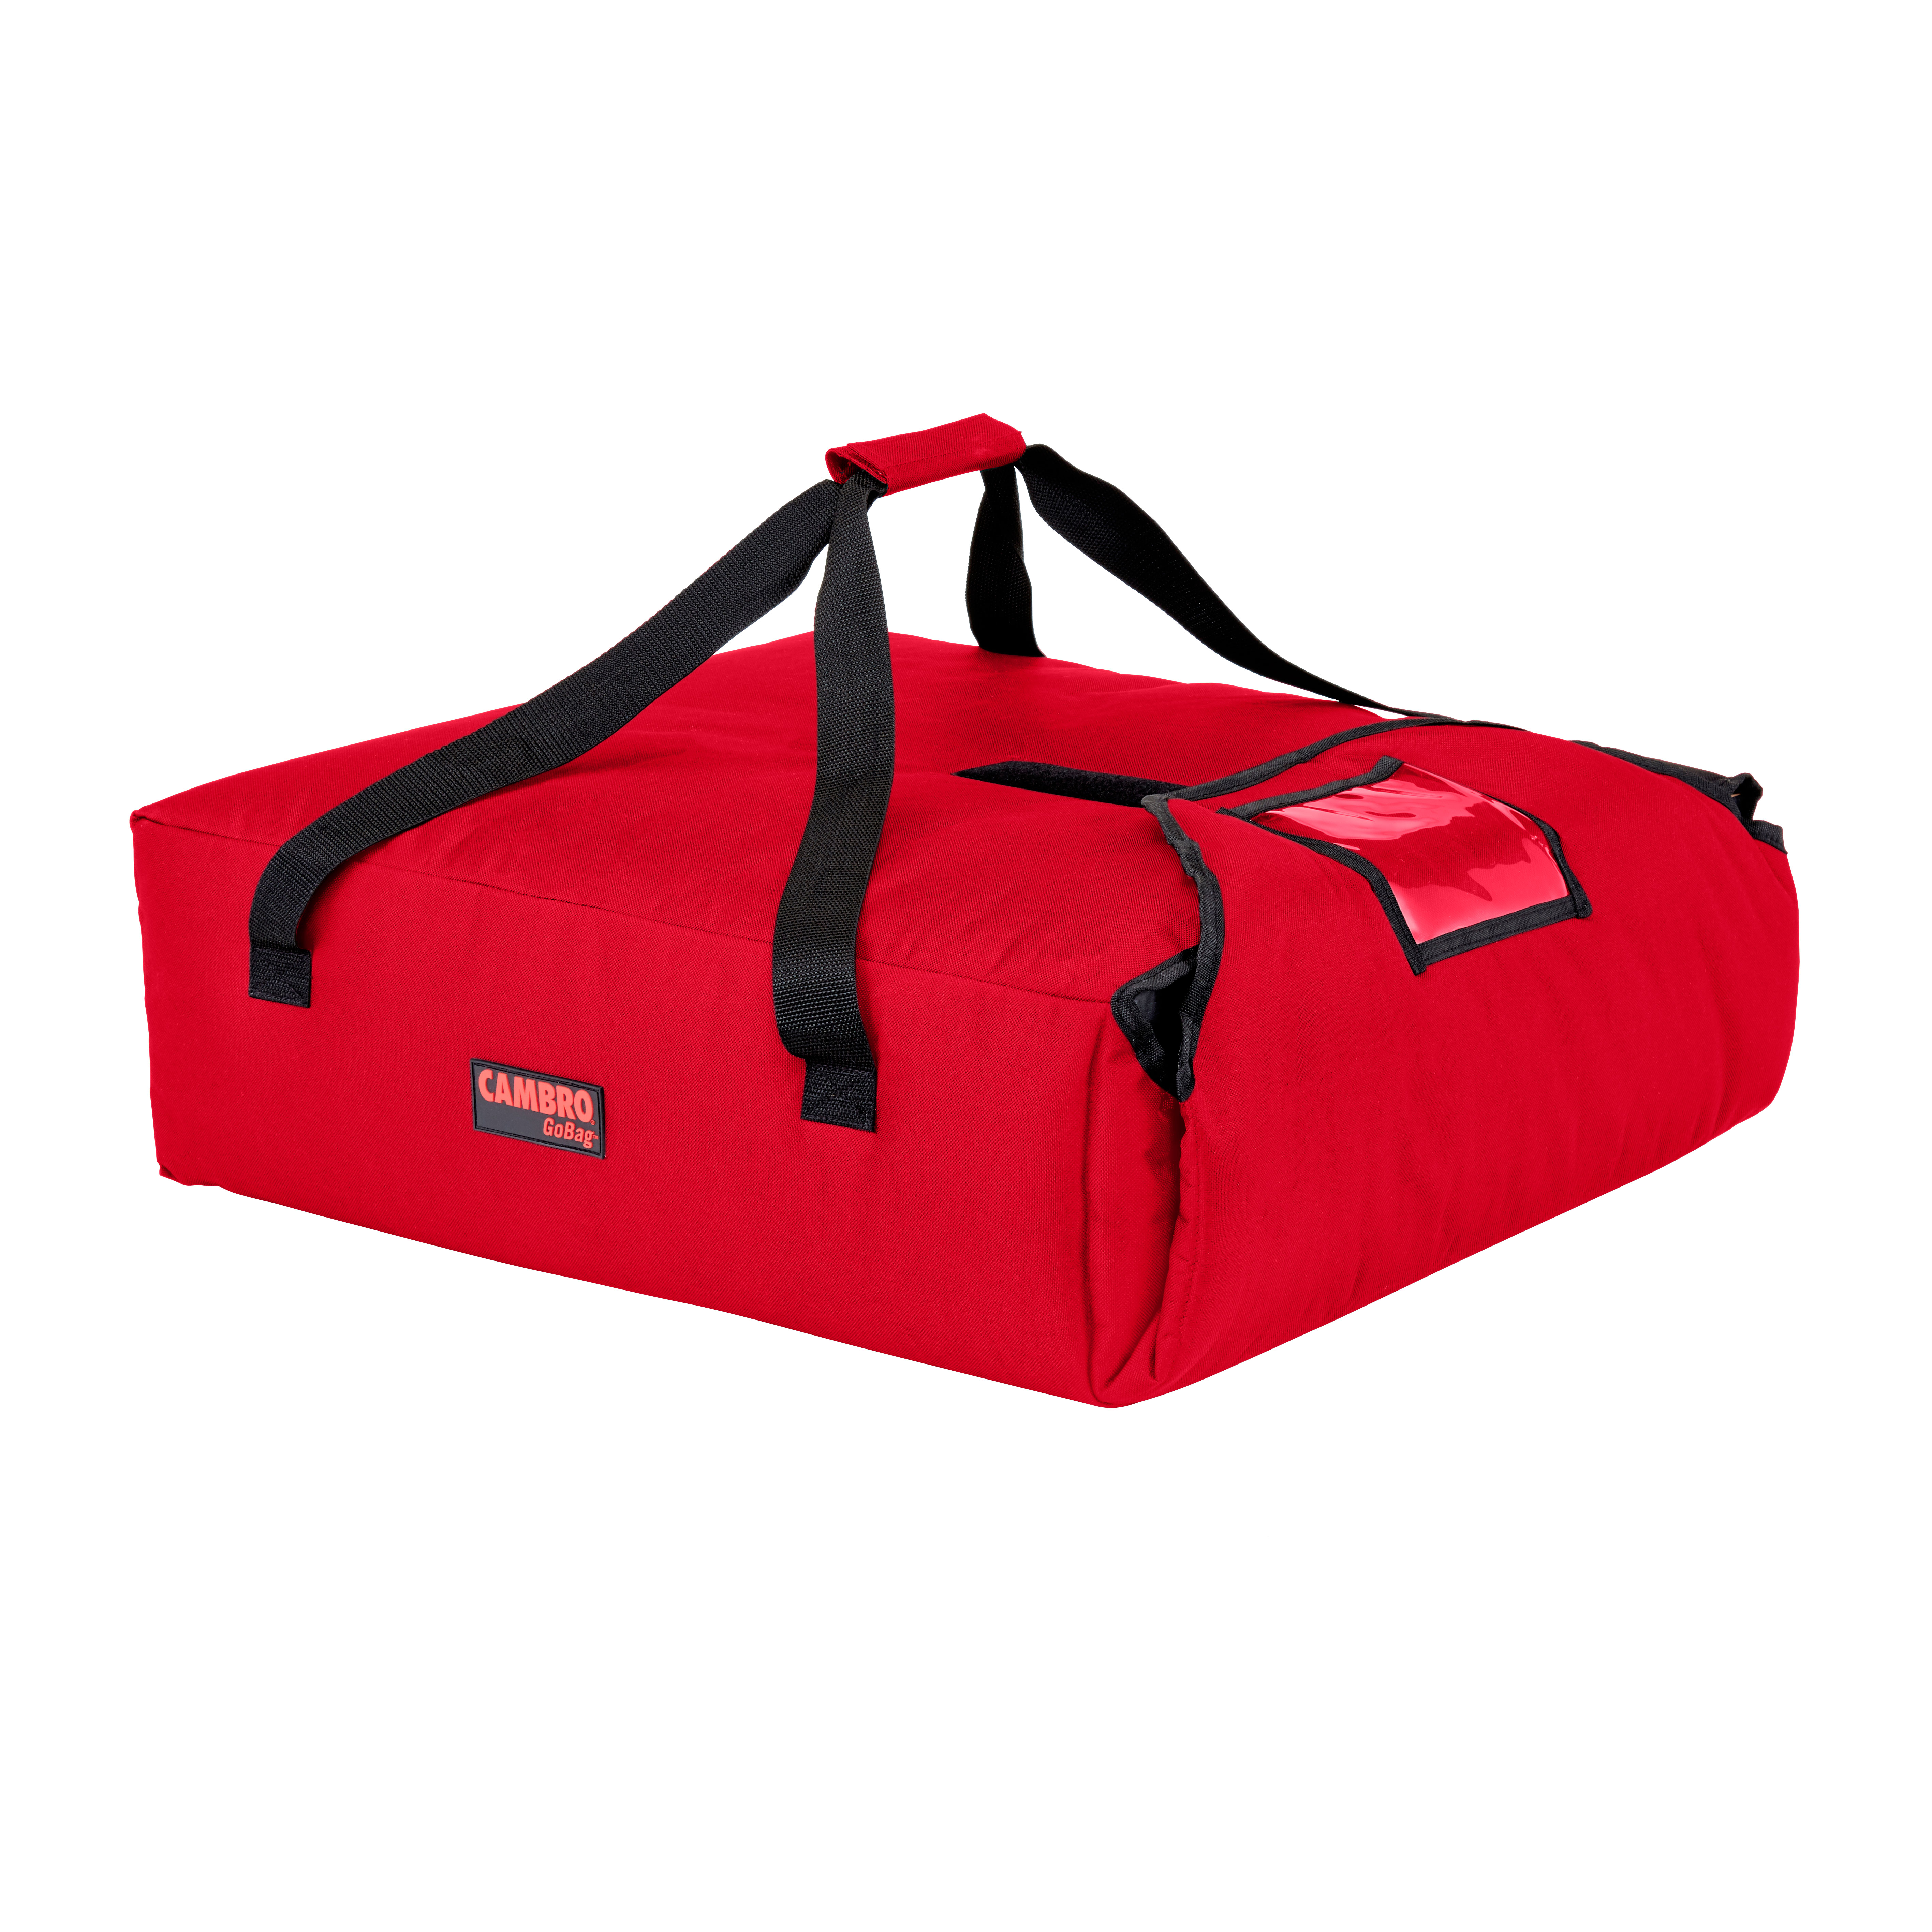 Cambro GBP220521 pizza delivery bag